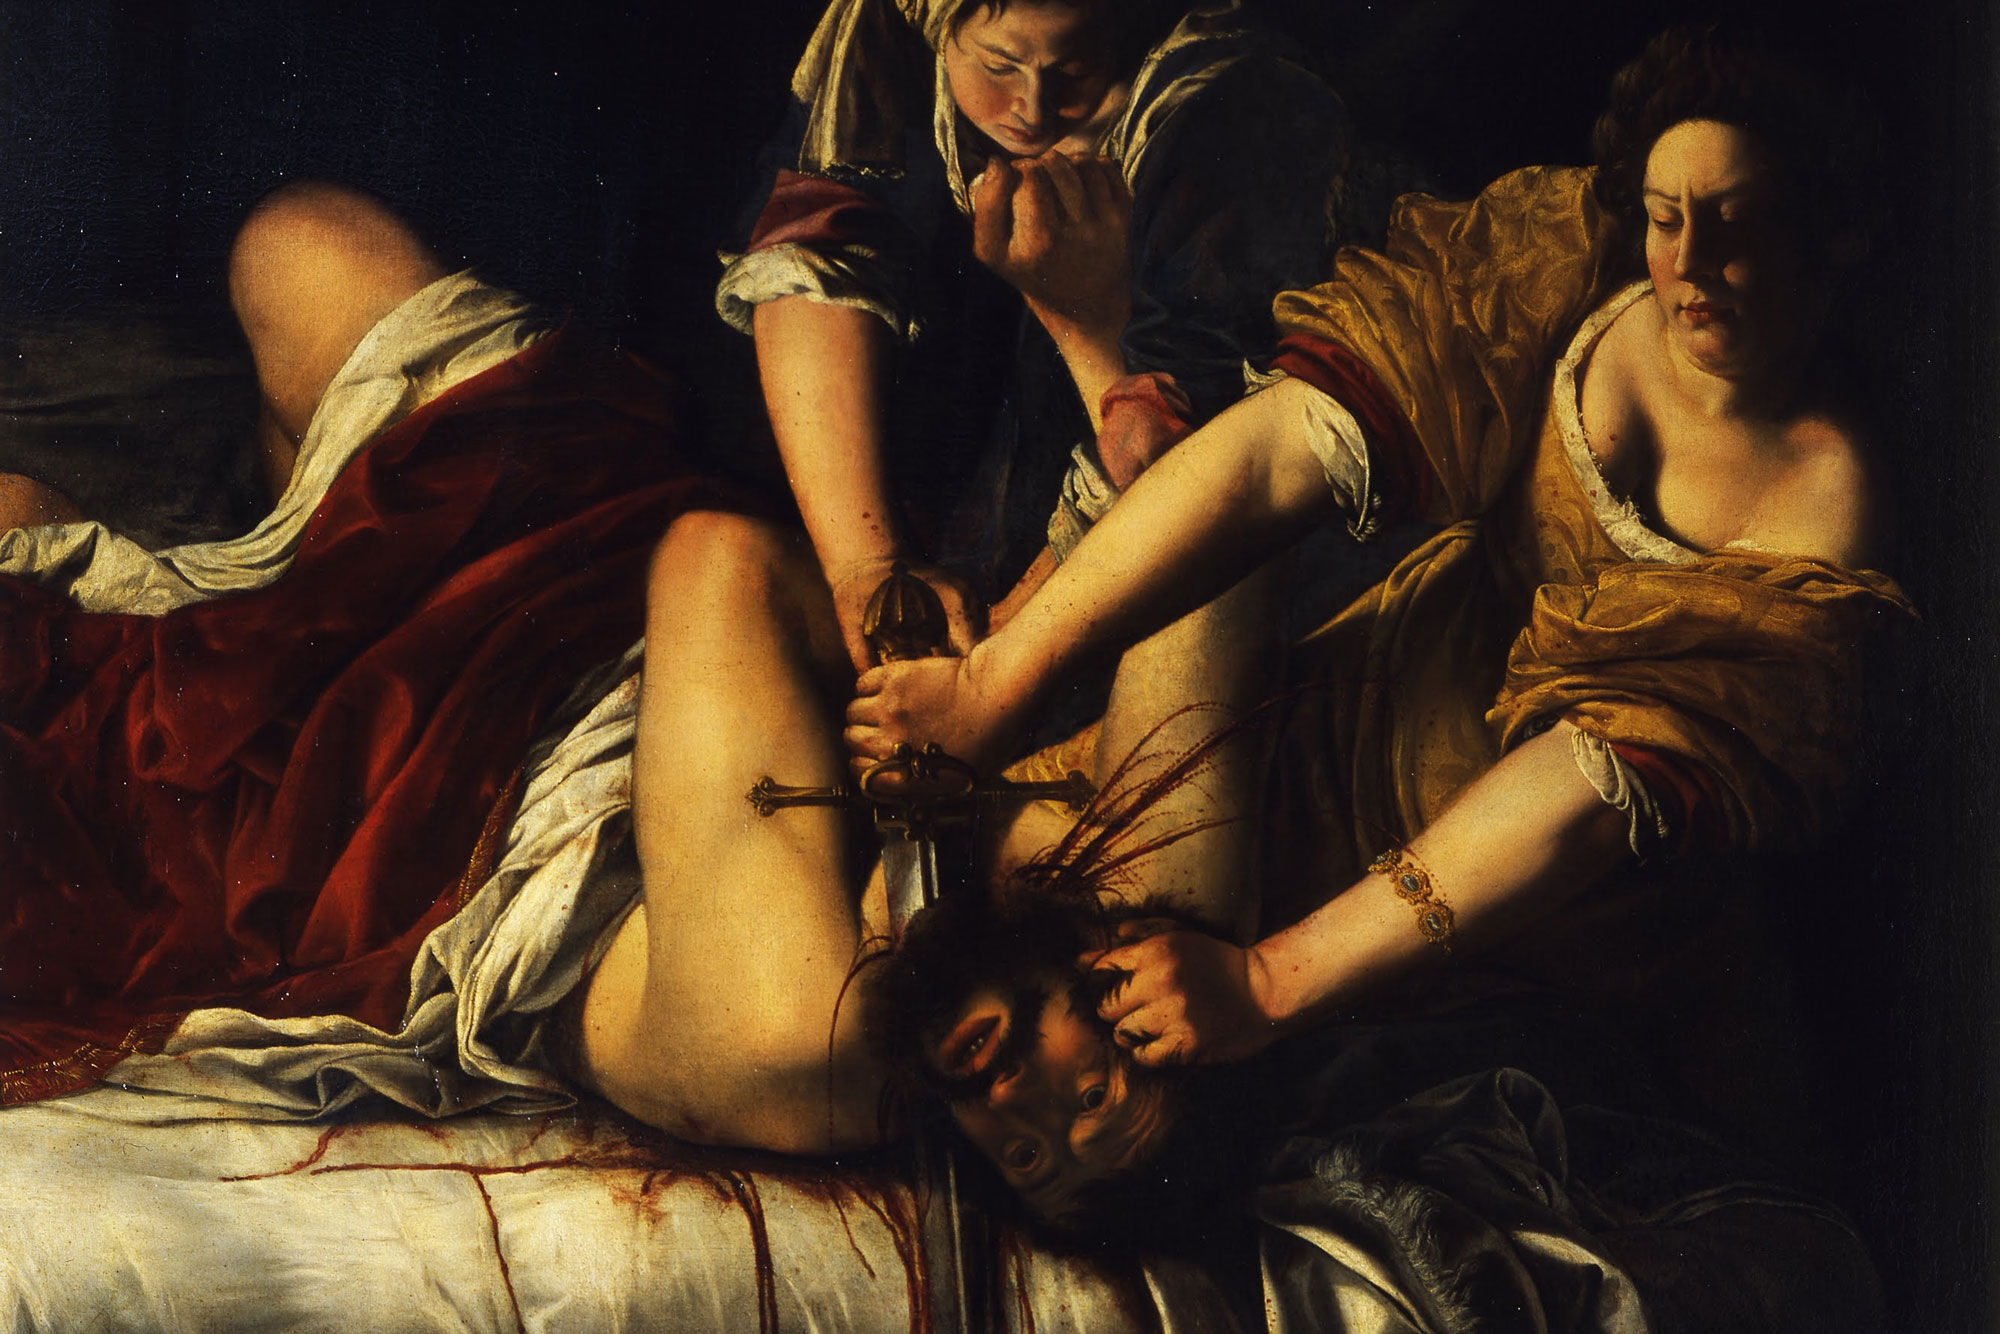 Detail of Artemisia Gentileschi, Judith and Holofernes, ca. 1620. Courtesy of Uffizi Gallery, Florence.